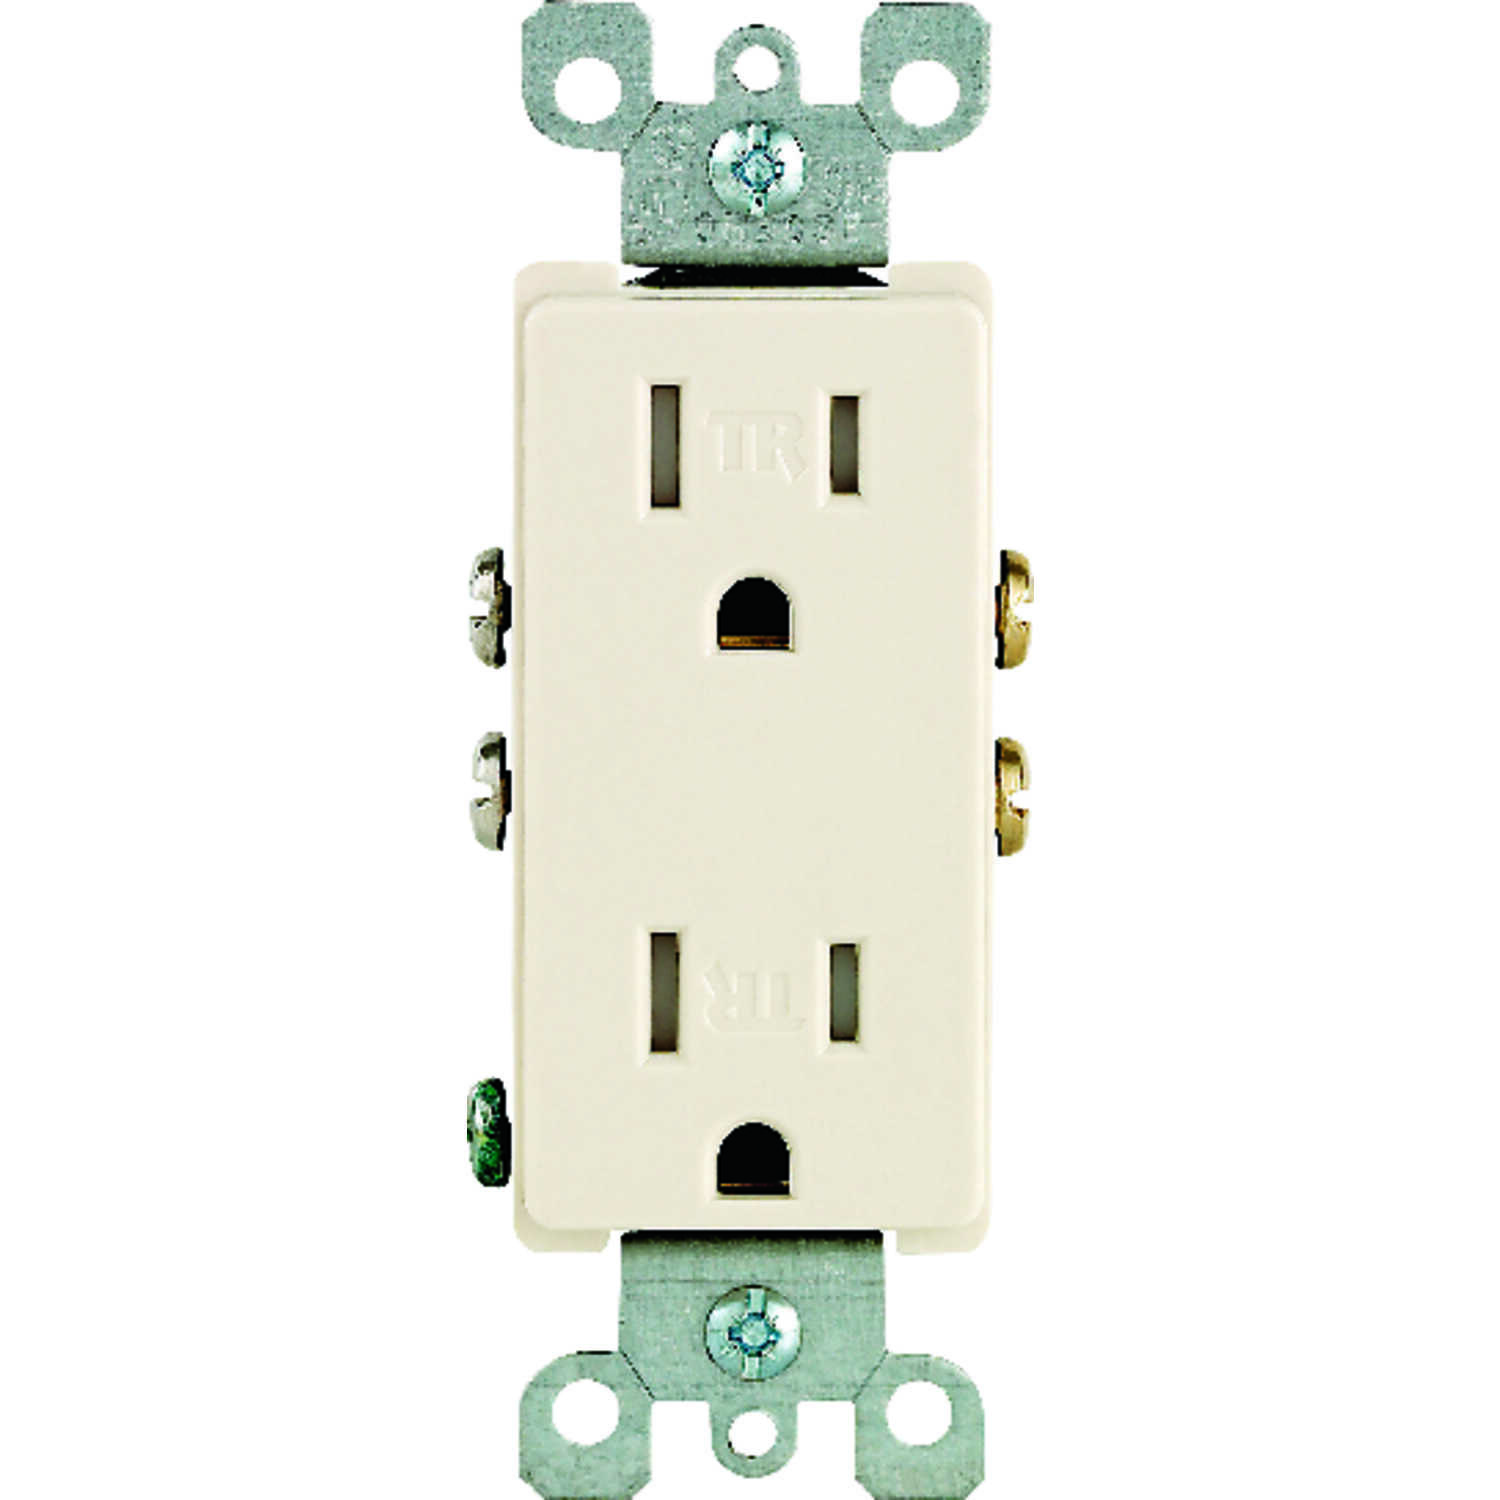 Leviton  Decora  15 amps 125 volt Light Almond  Tamper Resistant Outlet  5-15R  1 pk